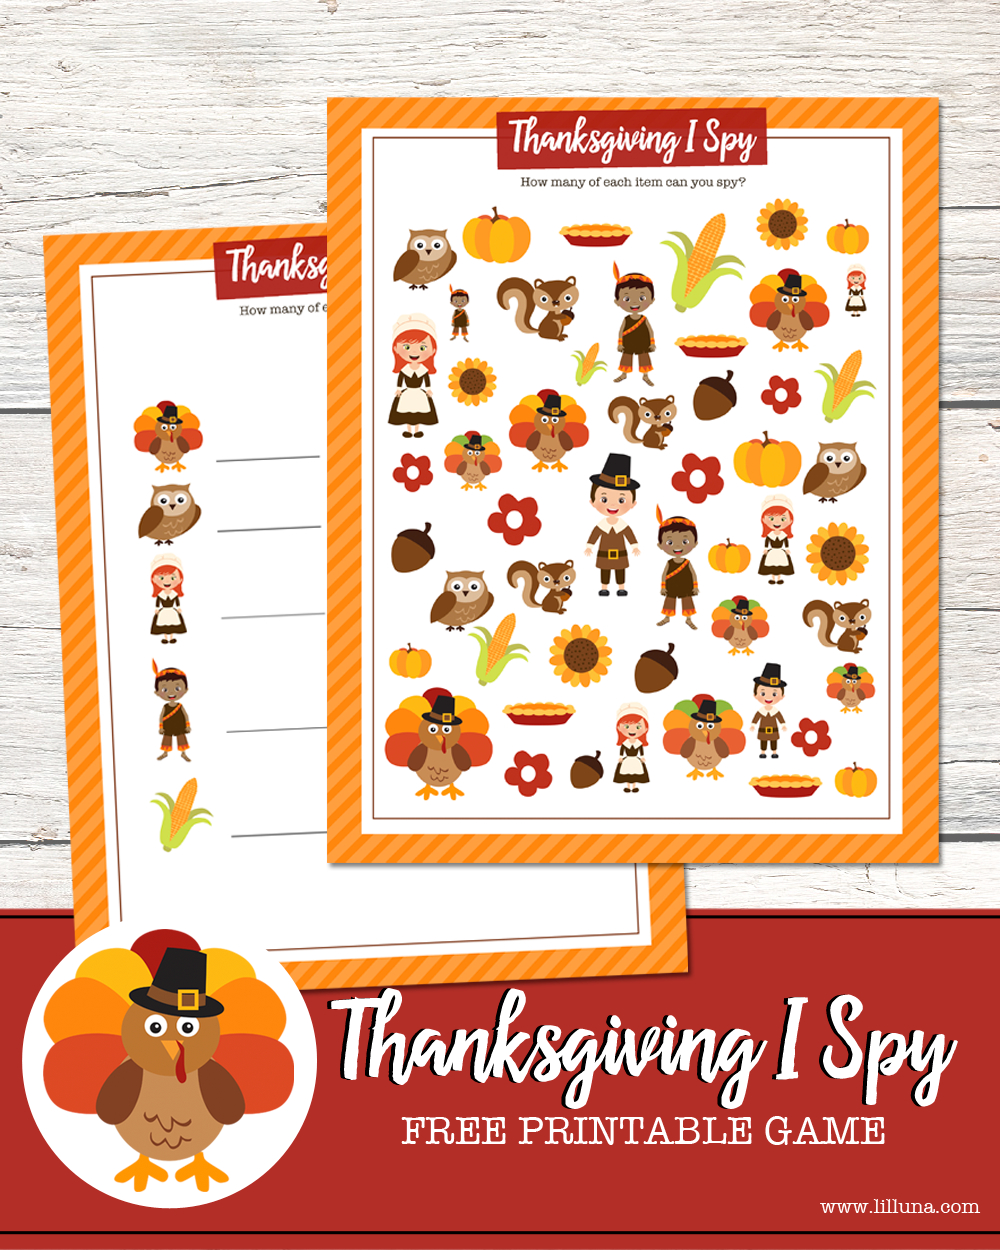 Thanksgiving I Spy Print | Thanksgiving Ideas | Thanksgiving - Free Printable Thanksgiving Games For Adults